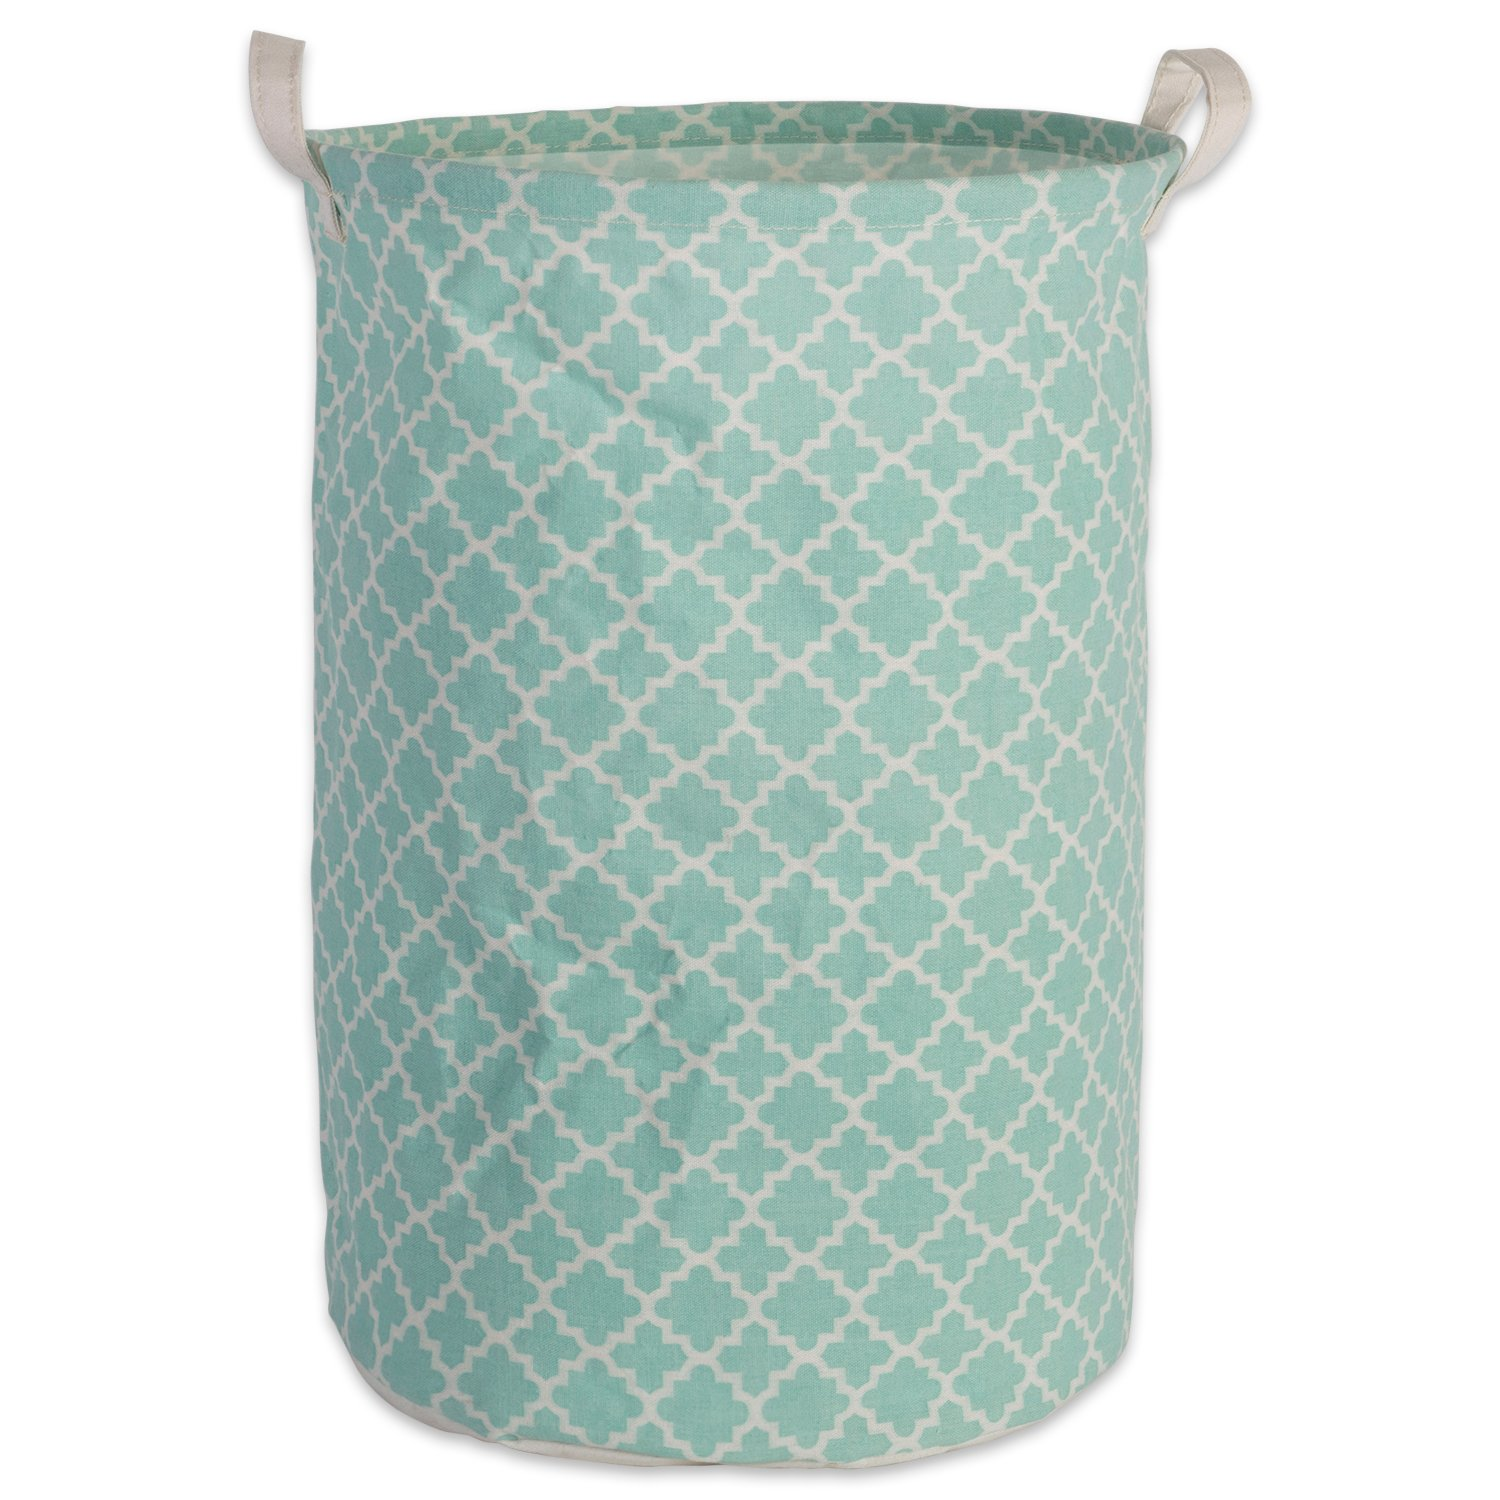 DII Cotton/Polyester Round Laundry Hamper or Basket, Perfect in Your Bedroom, Nursery, Dorm, Closet, 14 x 14 x 20 - Aqua Lattice